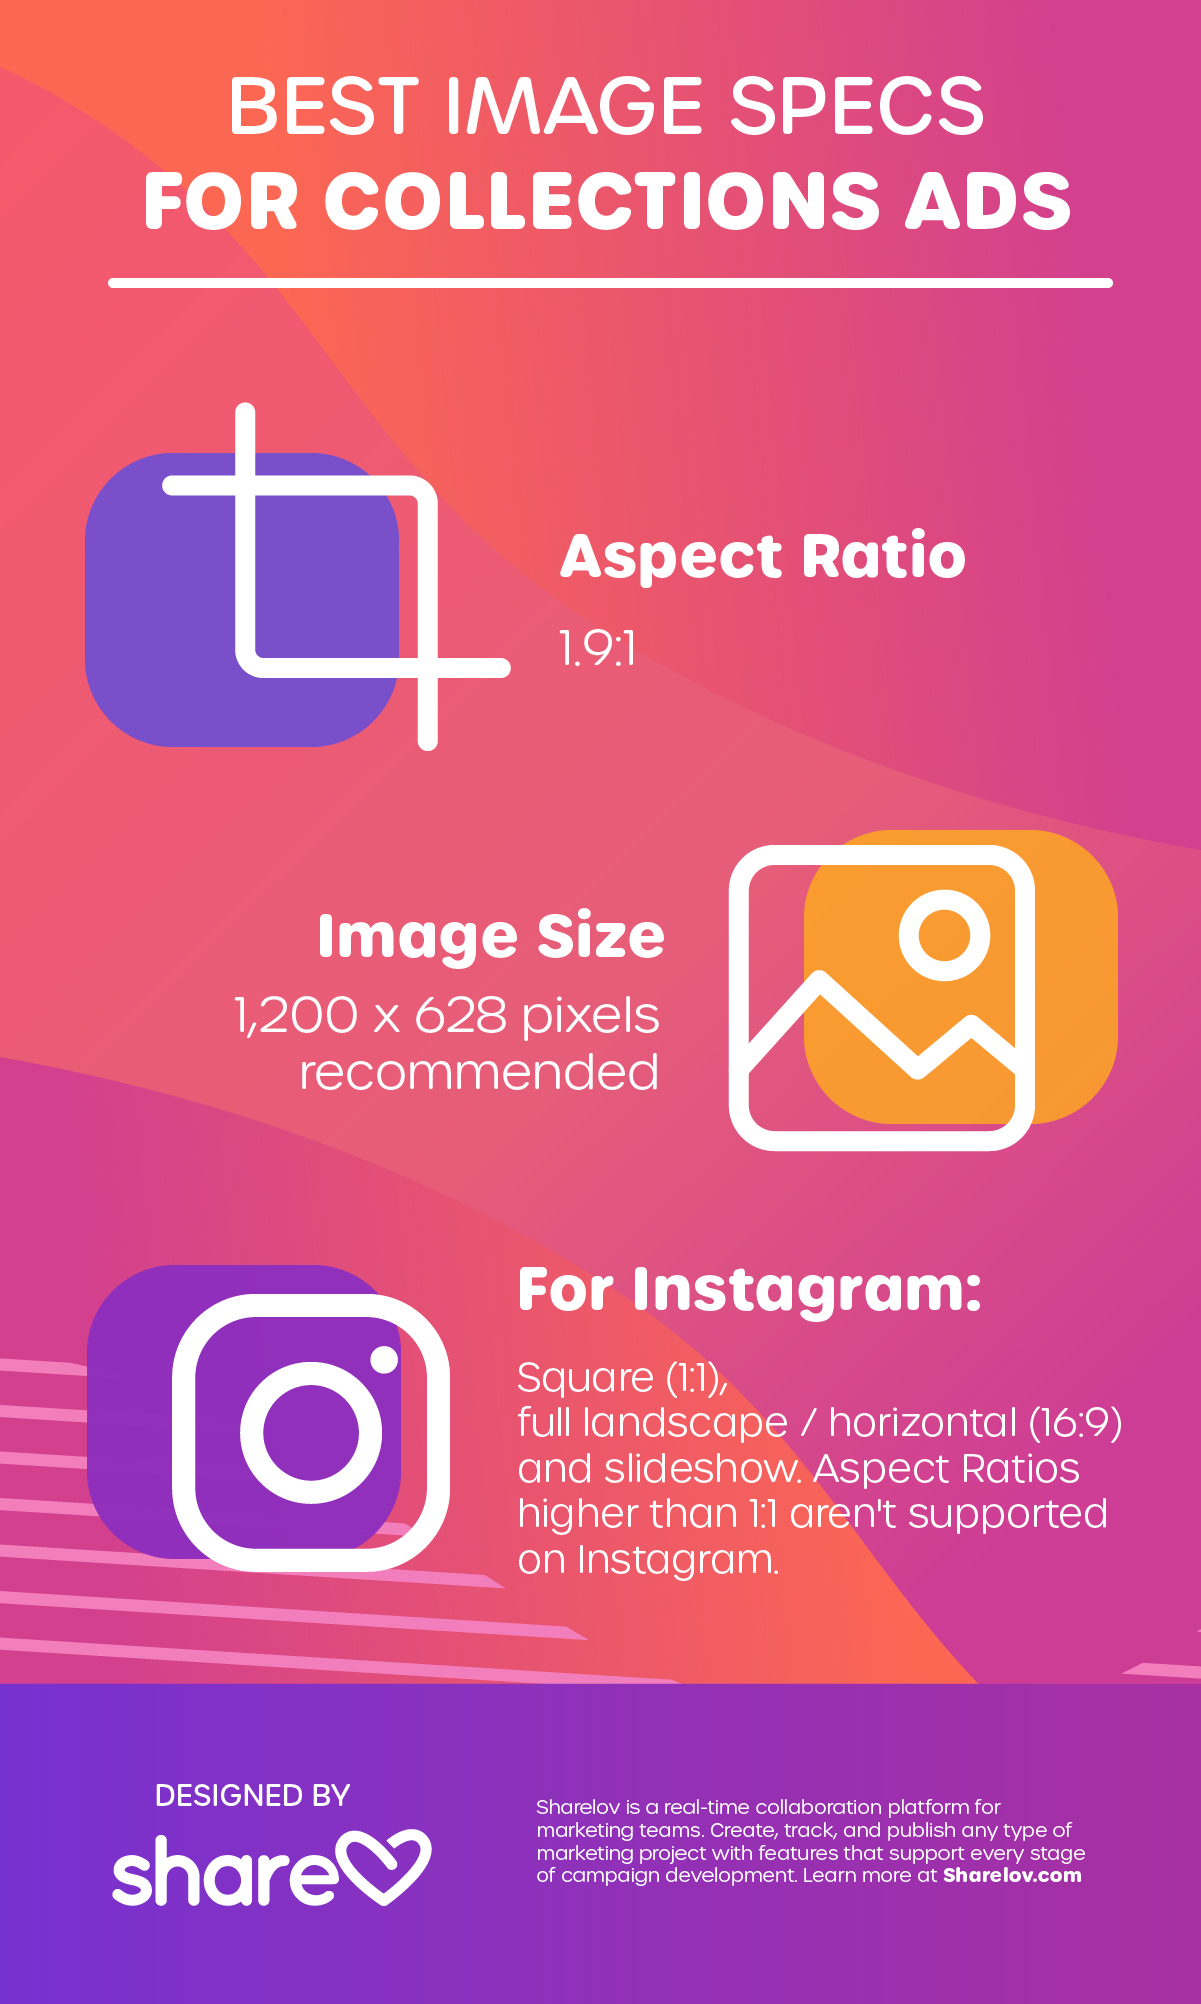 Best Image Specs for Collections Ads infographic